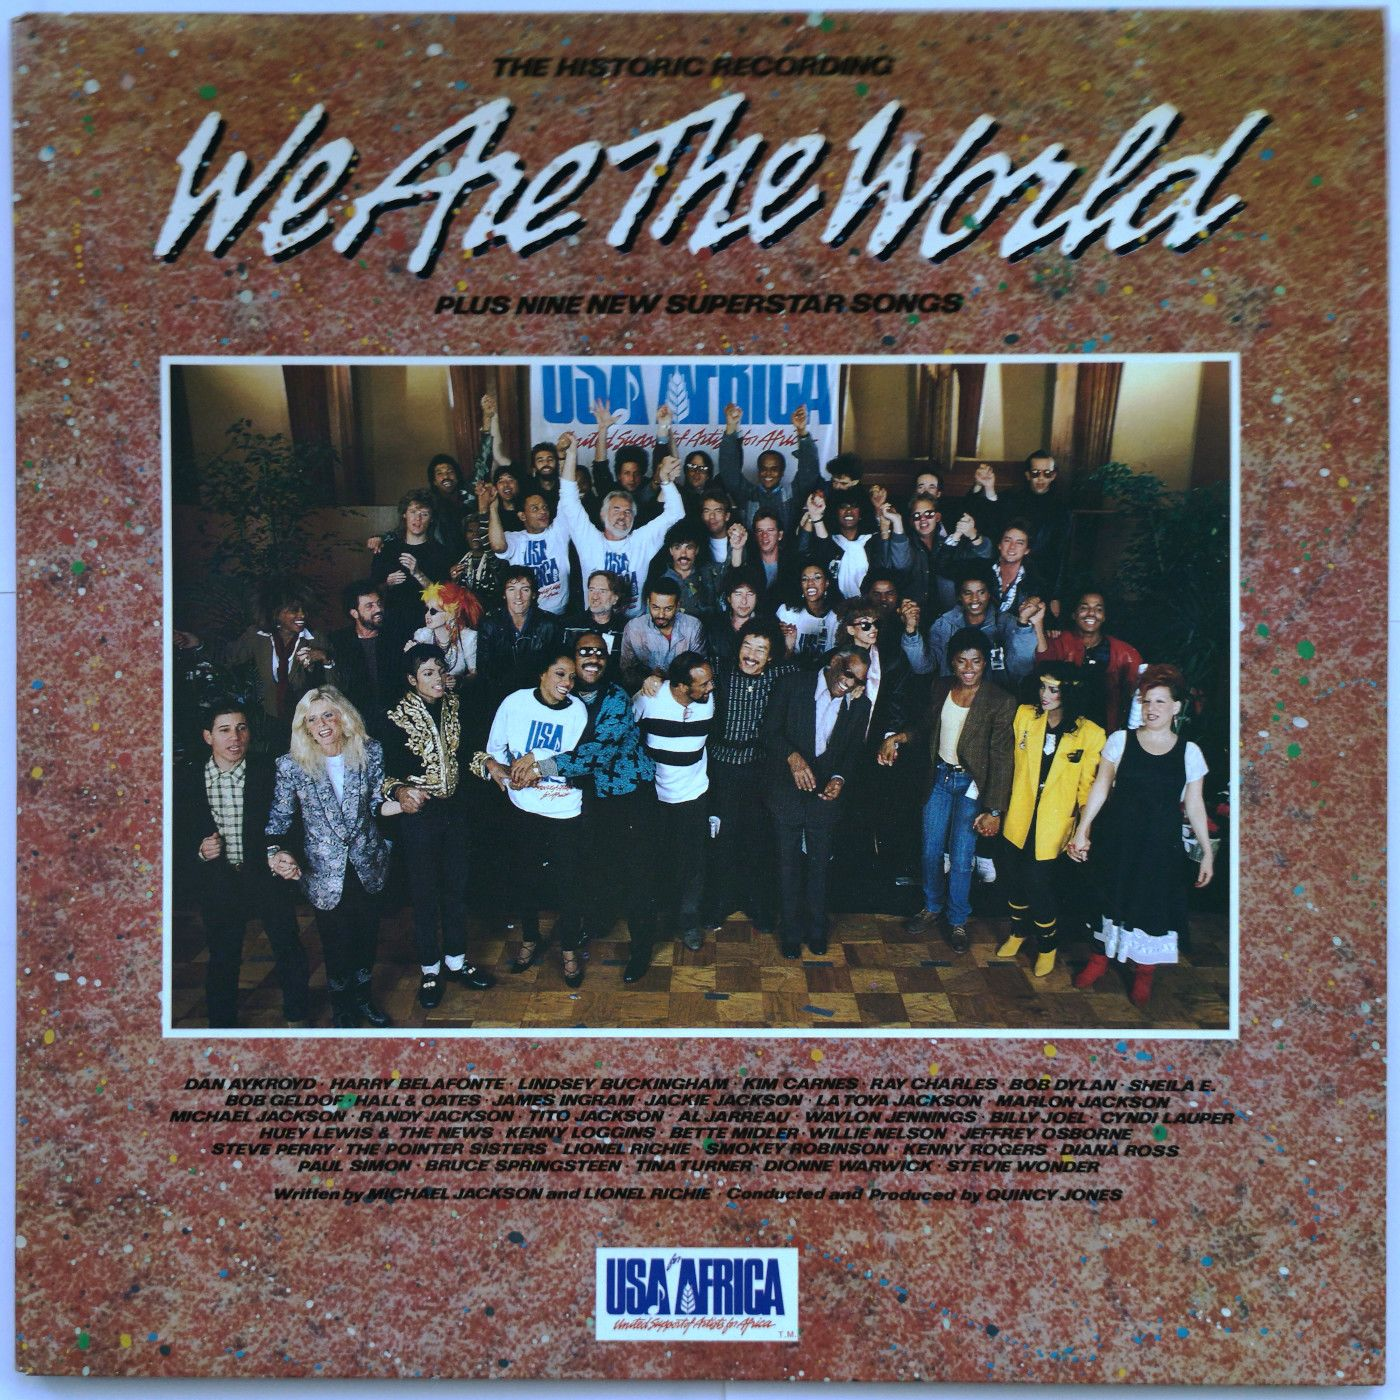 Various; Chicago, Huey Lewis & The News, Steve Perry, The Pointer SIsters, Bruce Springsteen, Prince And The Revolution, Tina Turner, Kenny Rogers, Billy Joel, Bob Dylan, Michael Jackson, Paul Simon, Ray Charles.... We Are The World LP undefined